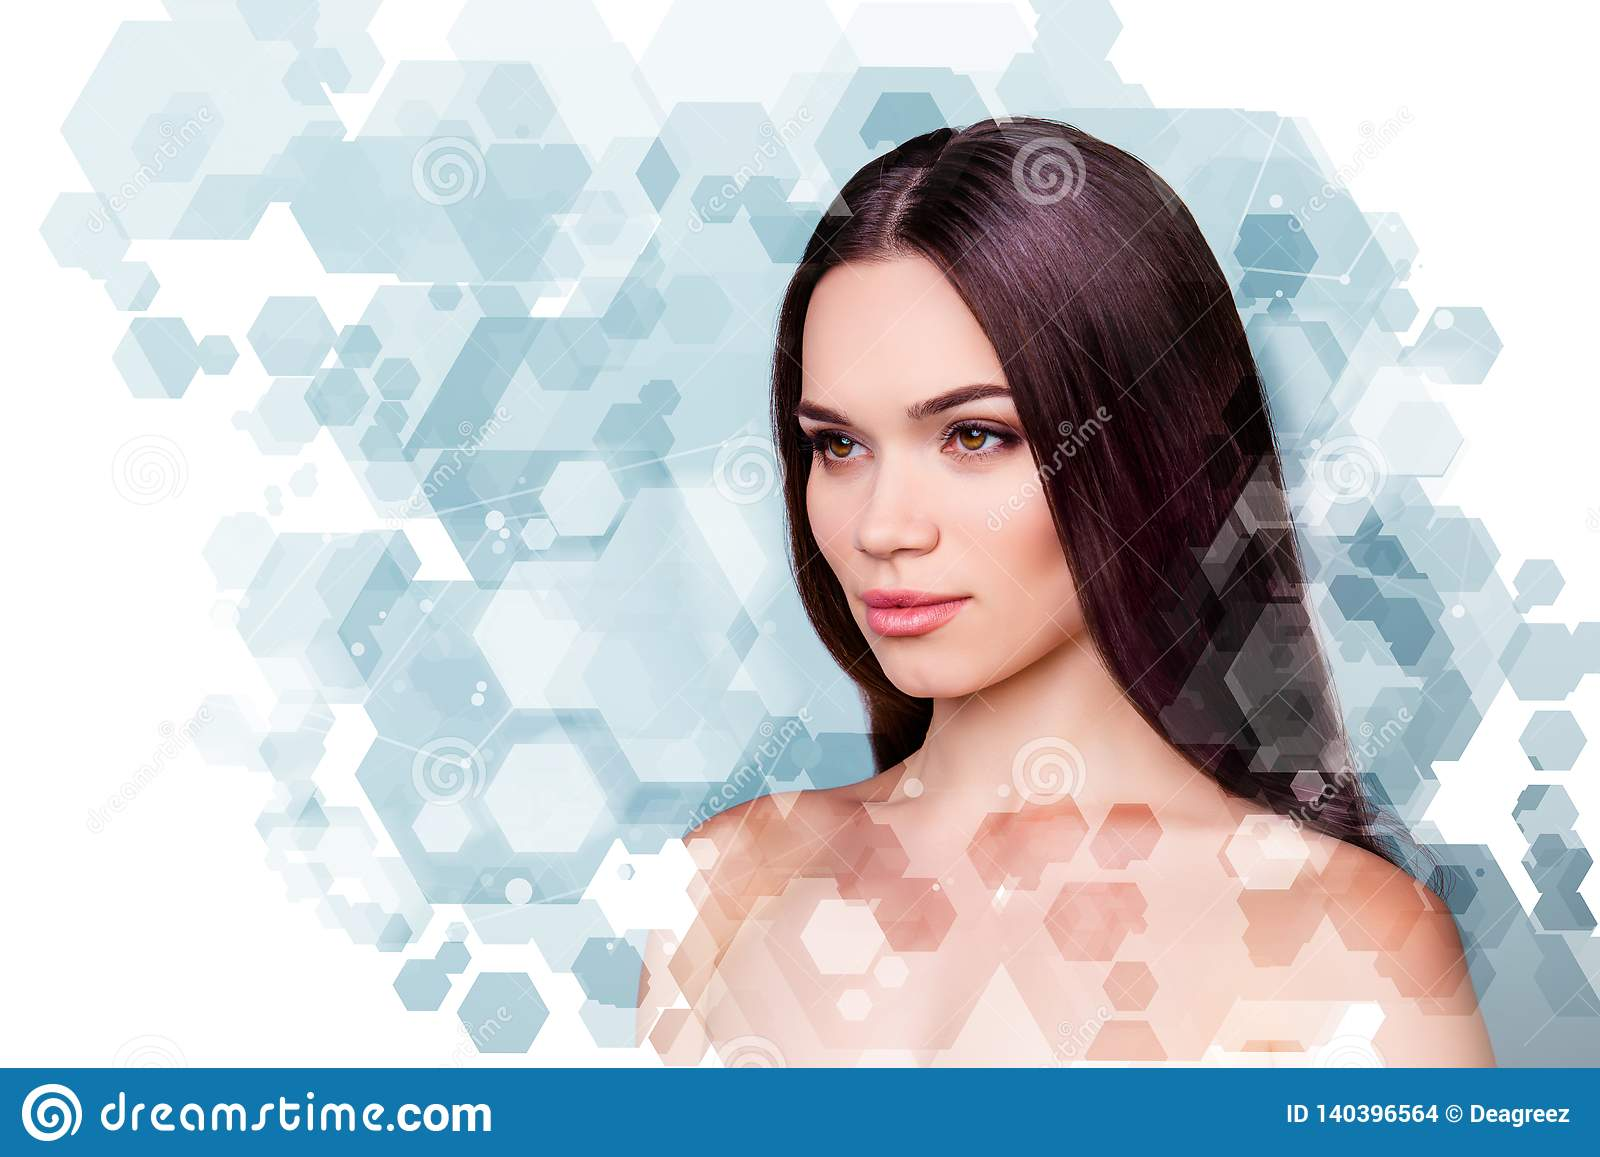 Wellbeing and wellness beauty and health concept. Coseup photo pretty she her young brunette woman looking fresh healthy